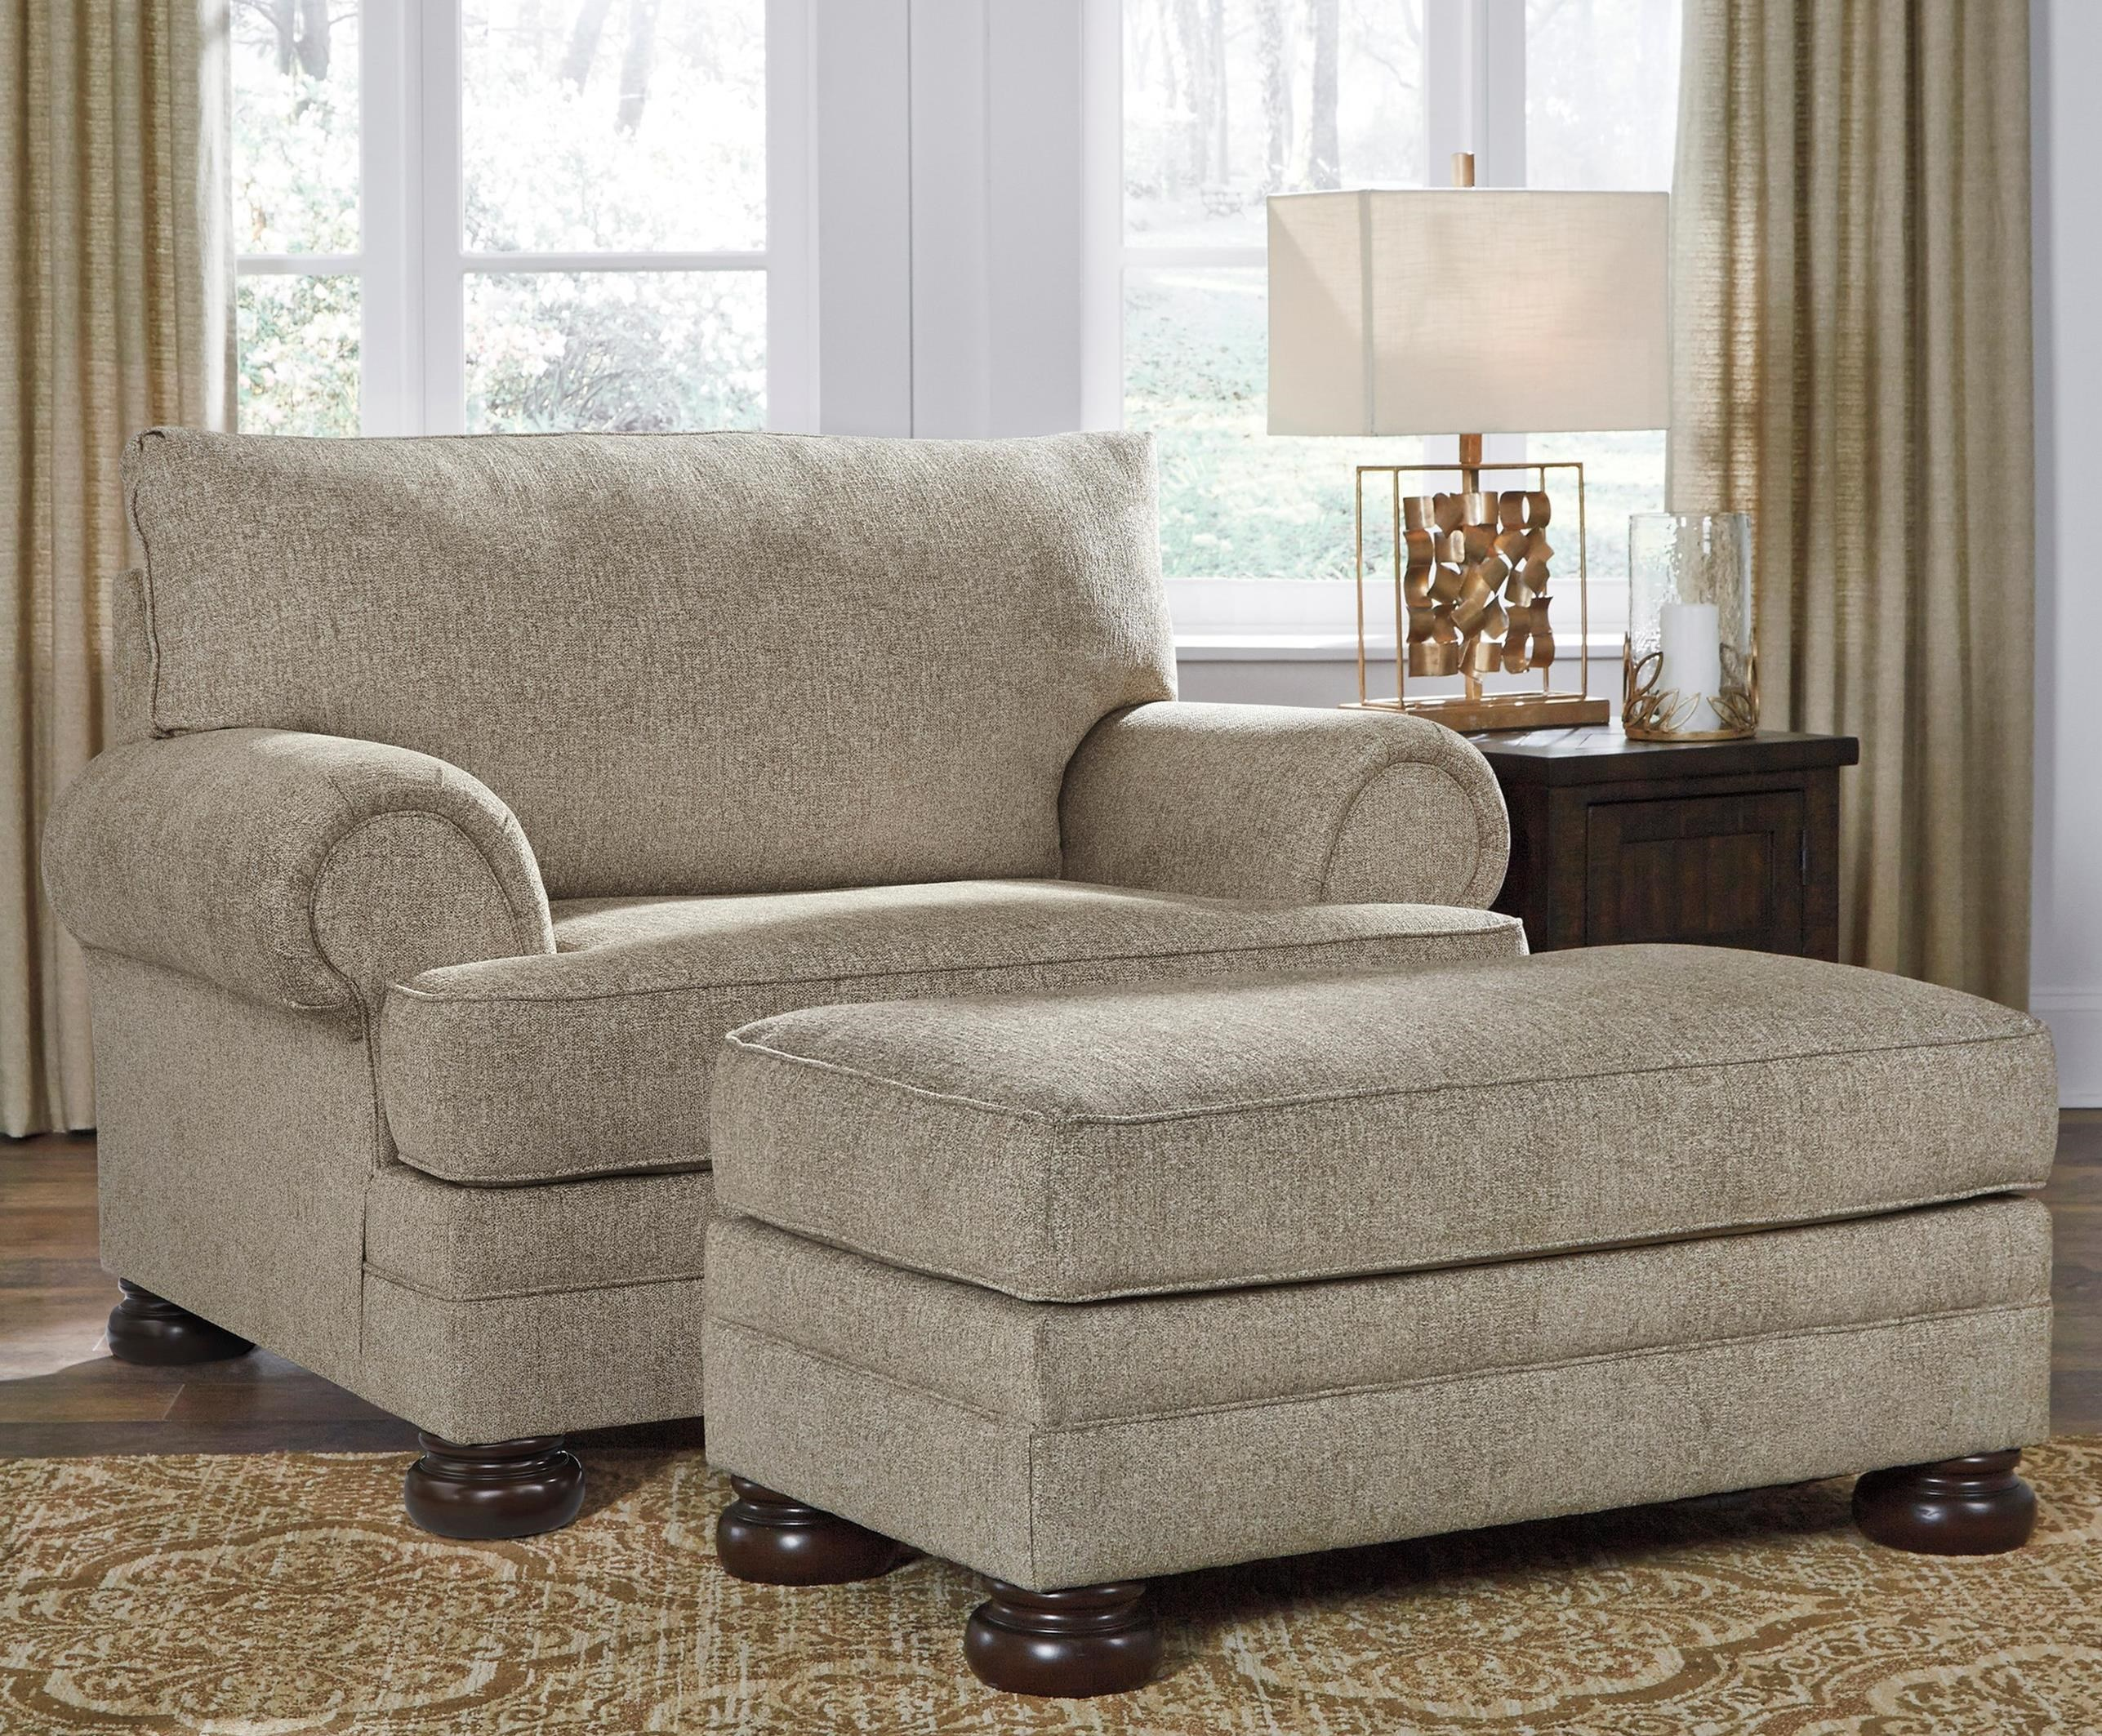 Kananwood Chair and a Half and Ottoman by Signature Design by Ashley at Standard Furniture